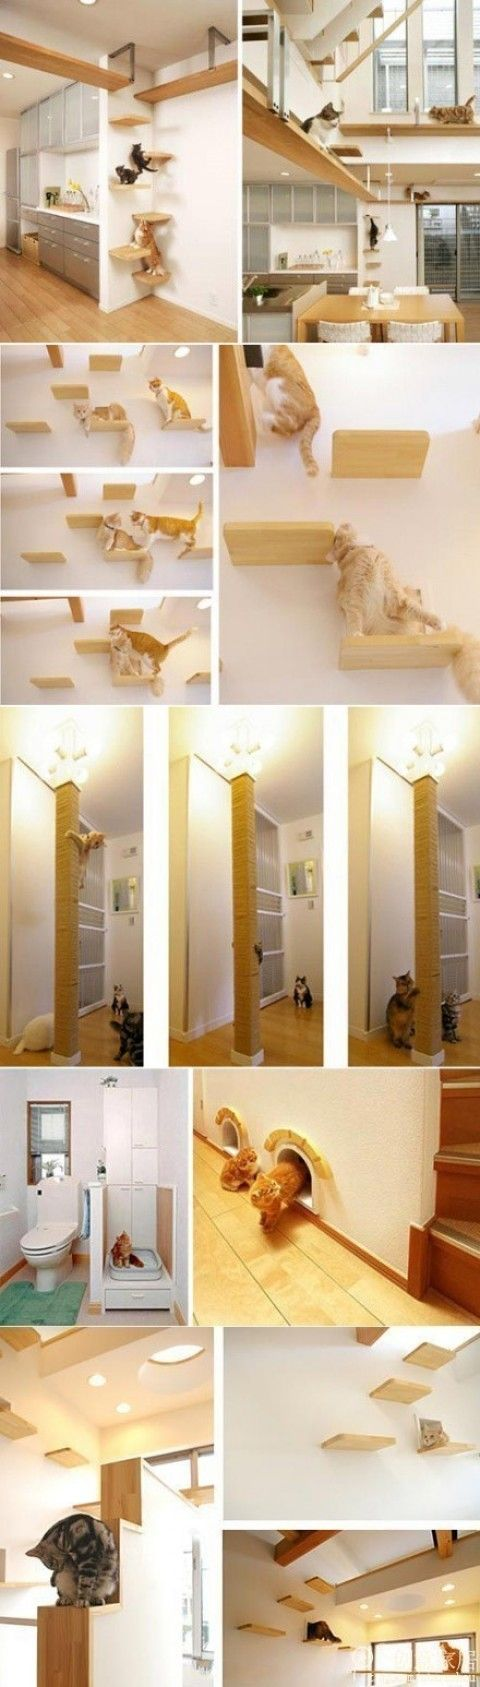 Uncategorized Cat Walkway In House eine wohnung eingerichtet katzen tiere gehege pinterest cat house a cats wildest dreams come true this is also crazy ladys dream i want things like t